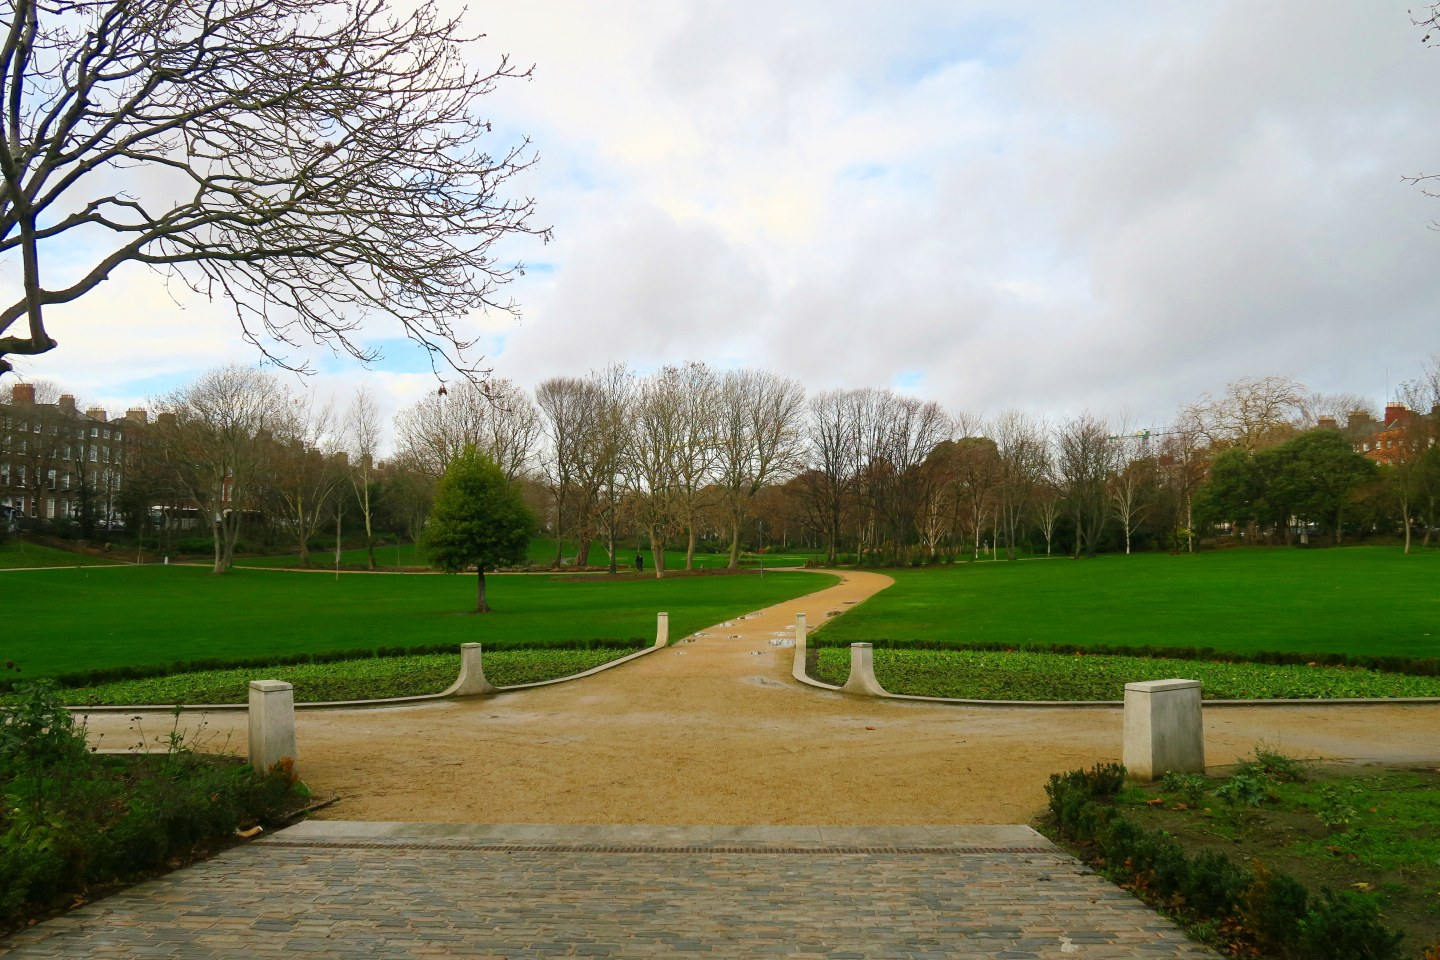 36 hours in Dublin - Merrion Park